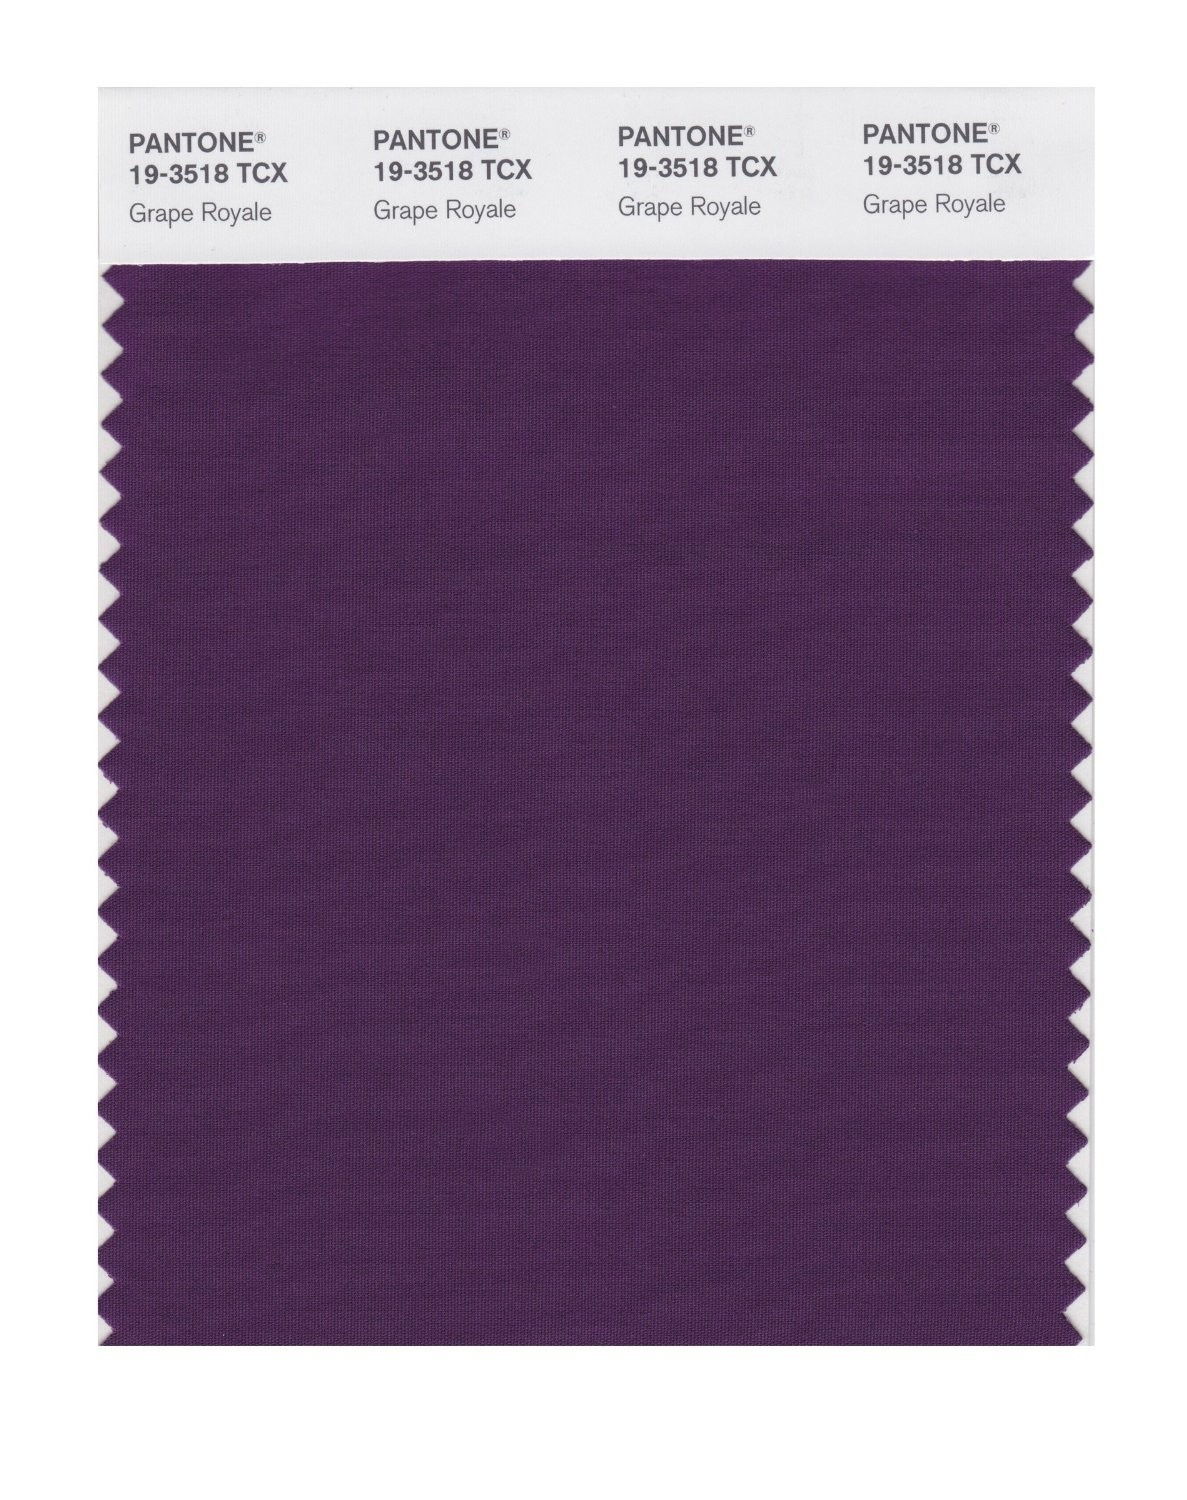 Pantone 19-3518 TCX Swatch Card Grape Royale